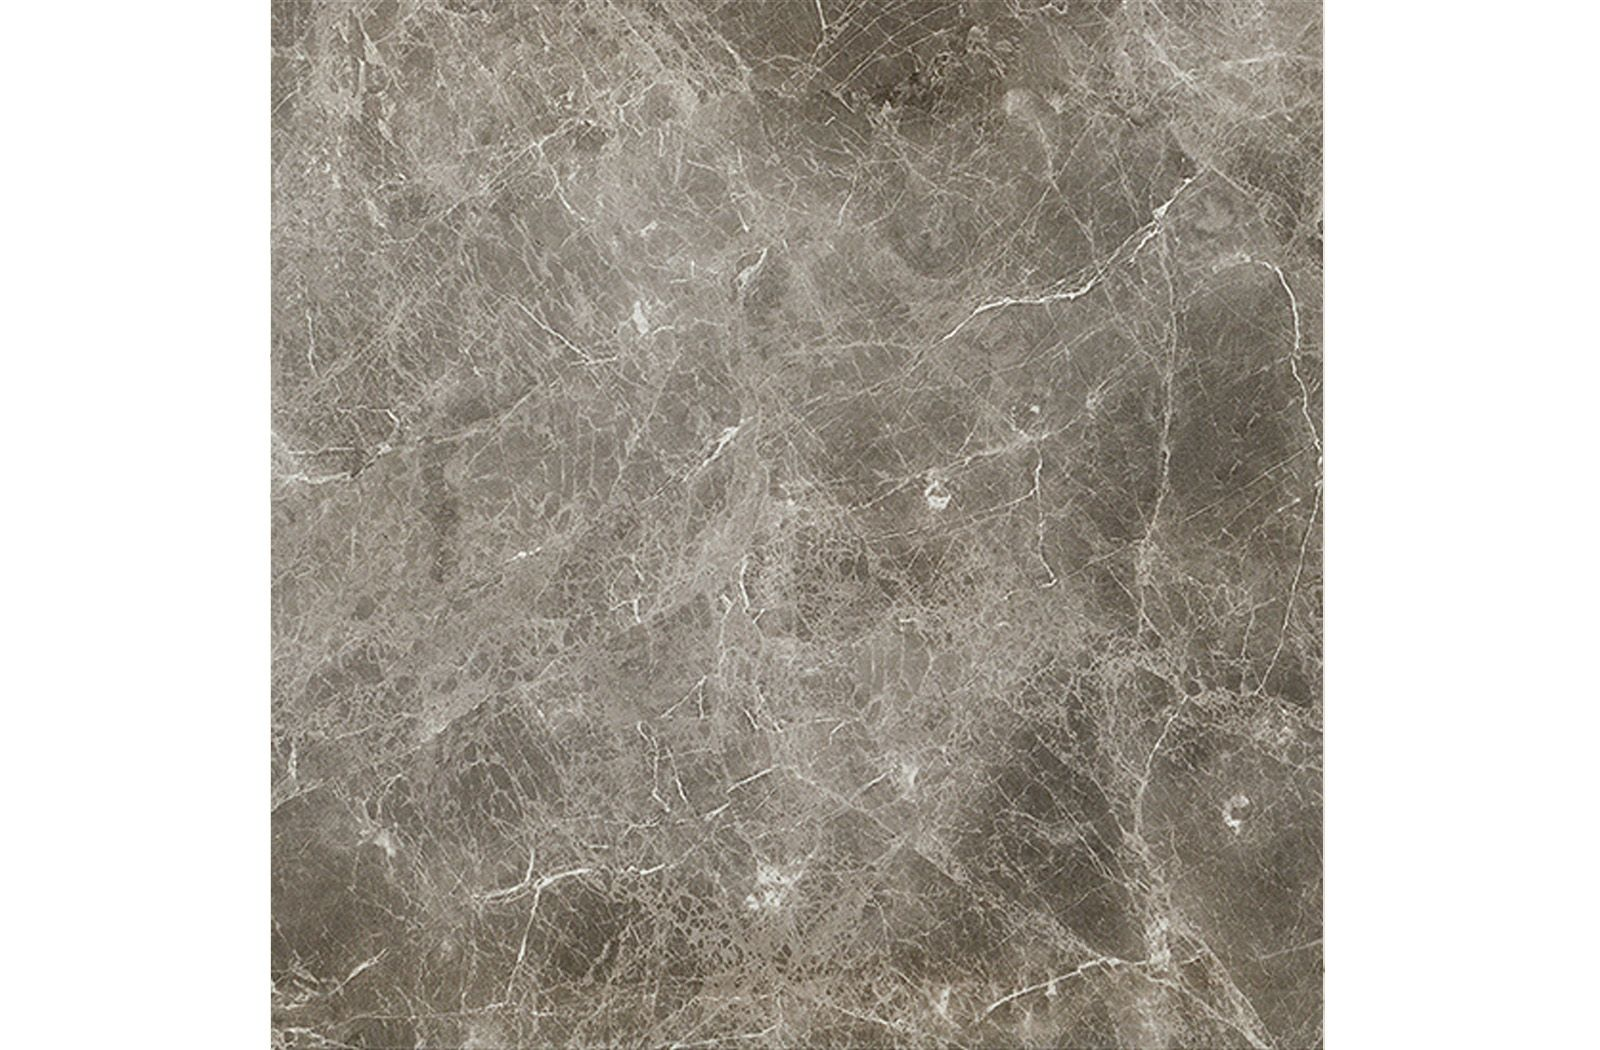 Marmorea2 All the timeless, classic style of marble, with its